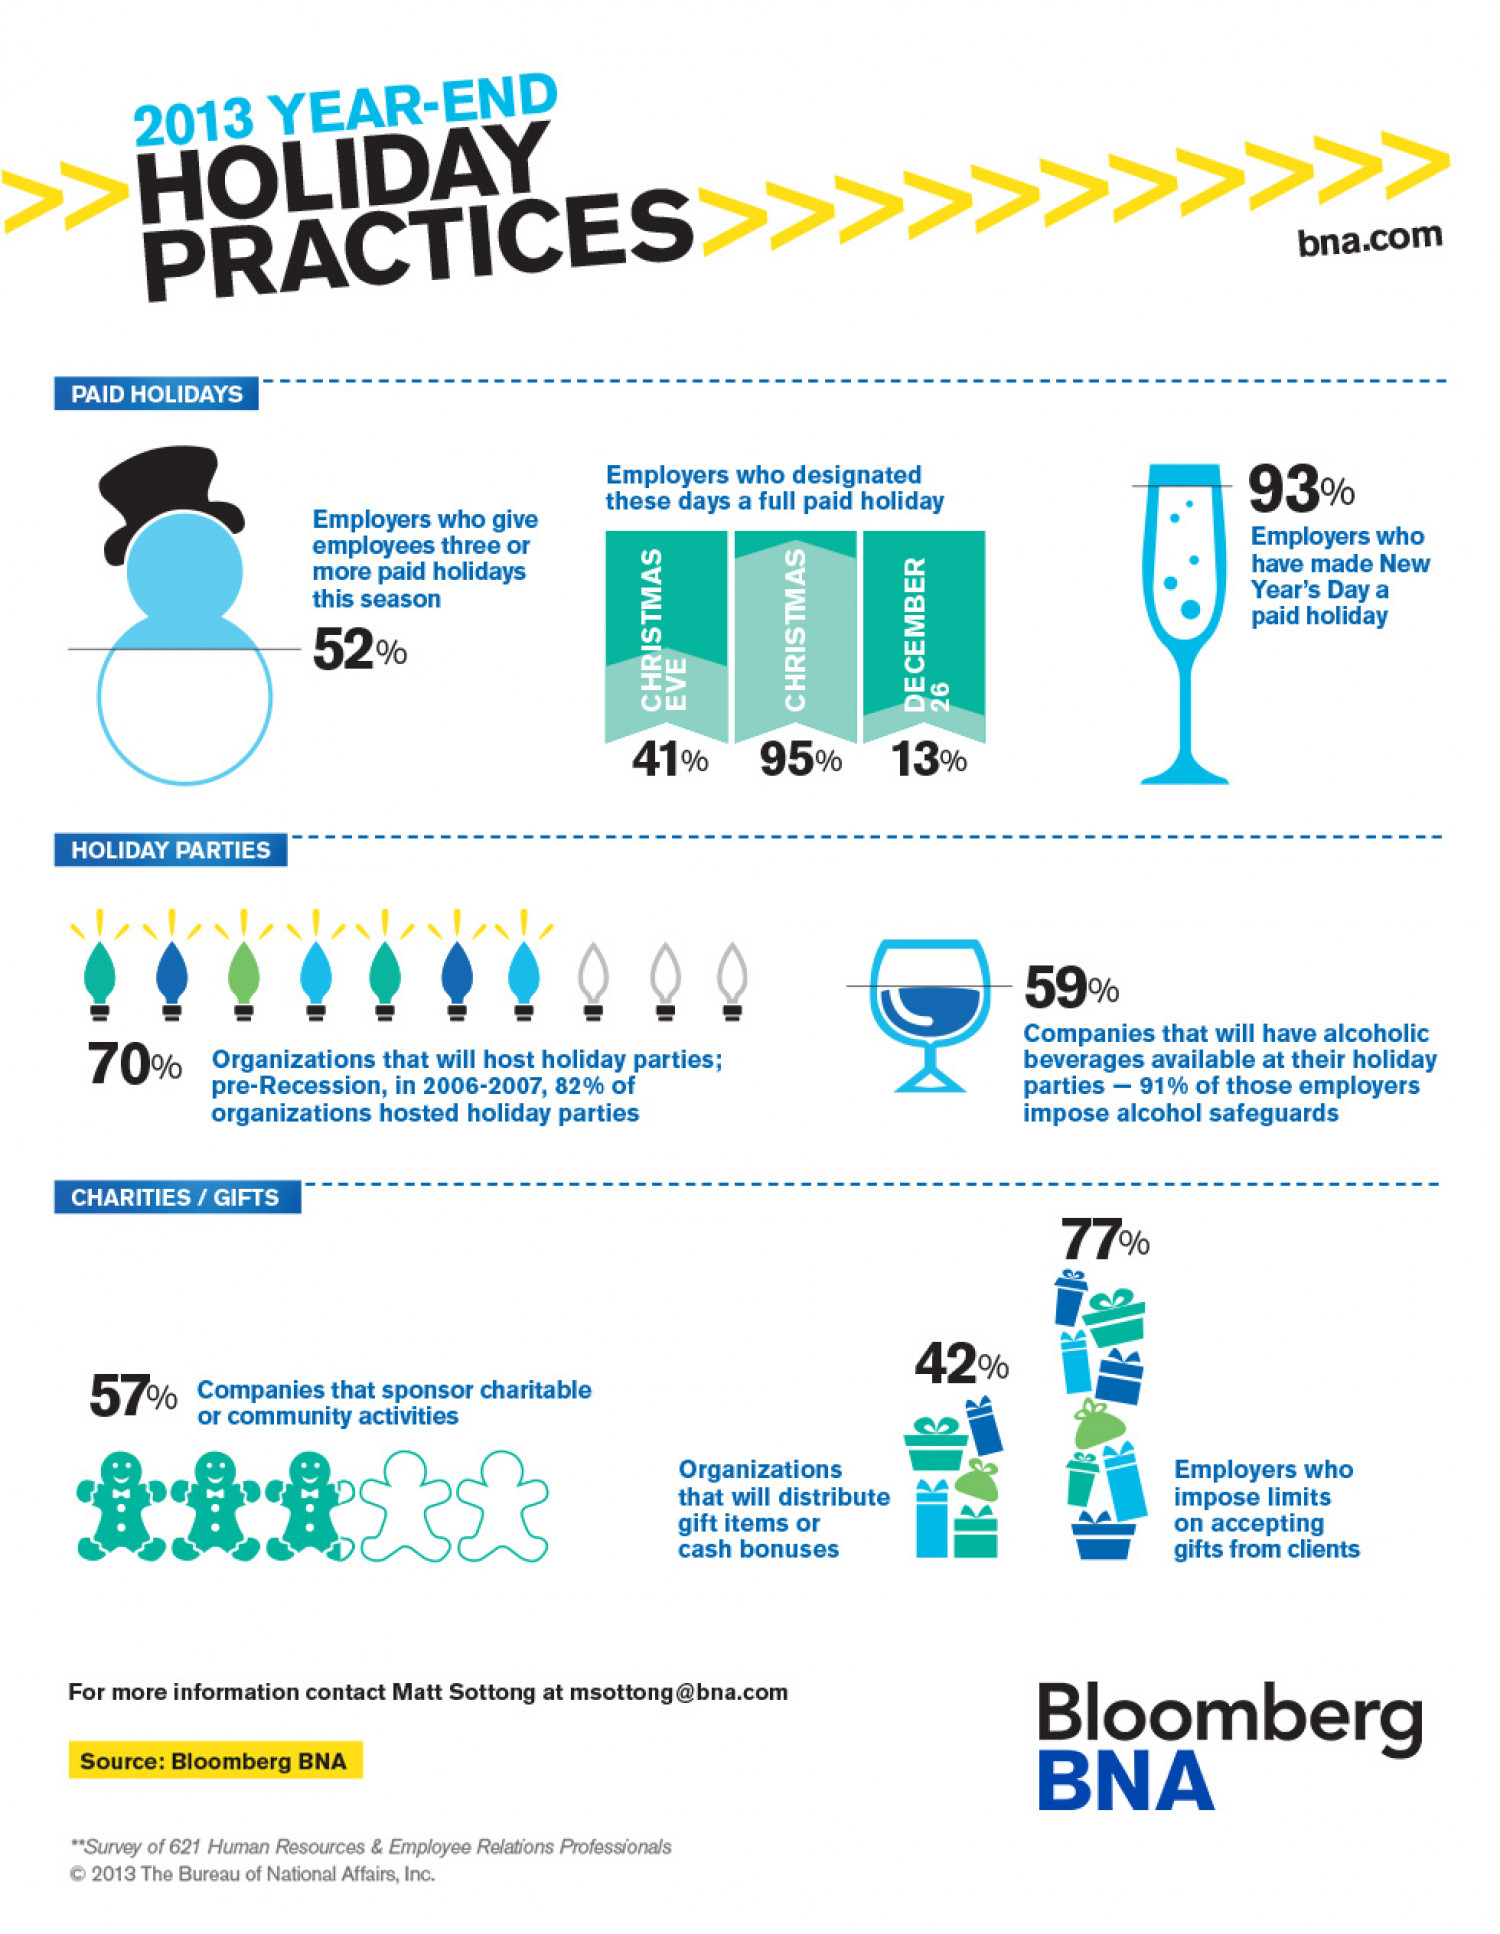 2013 Year-End Holiday Practices Infographic